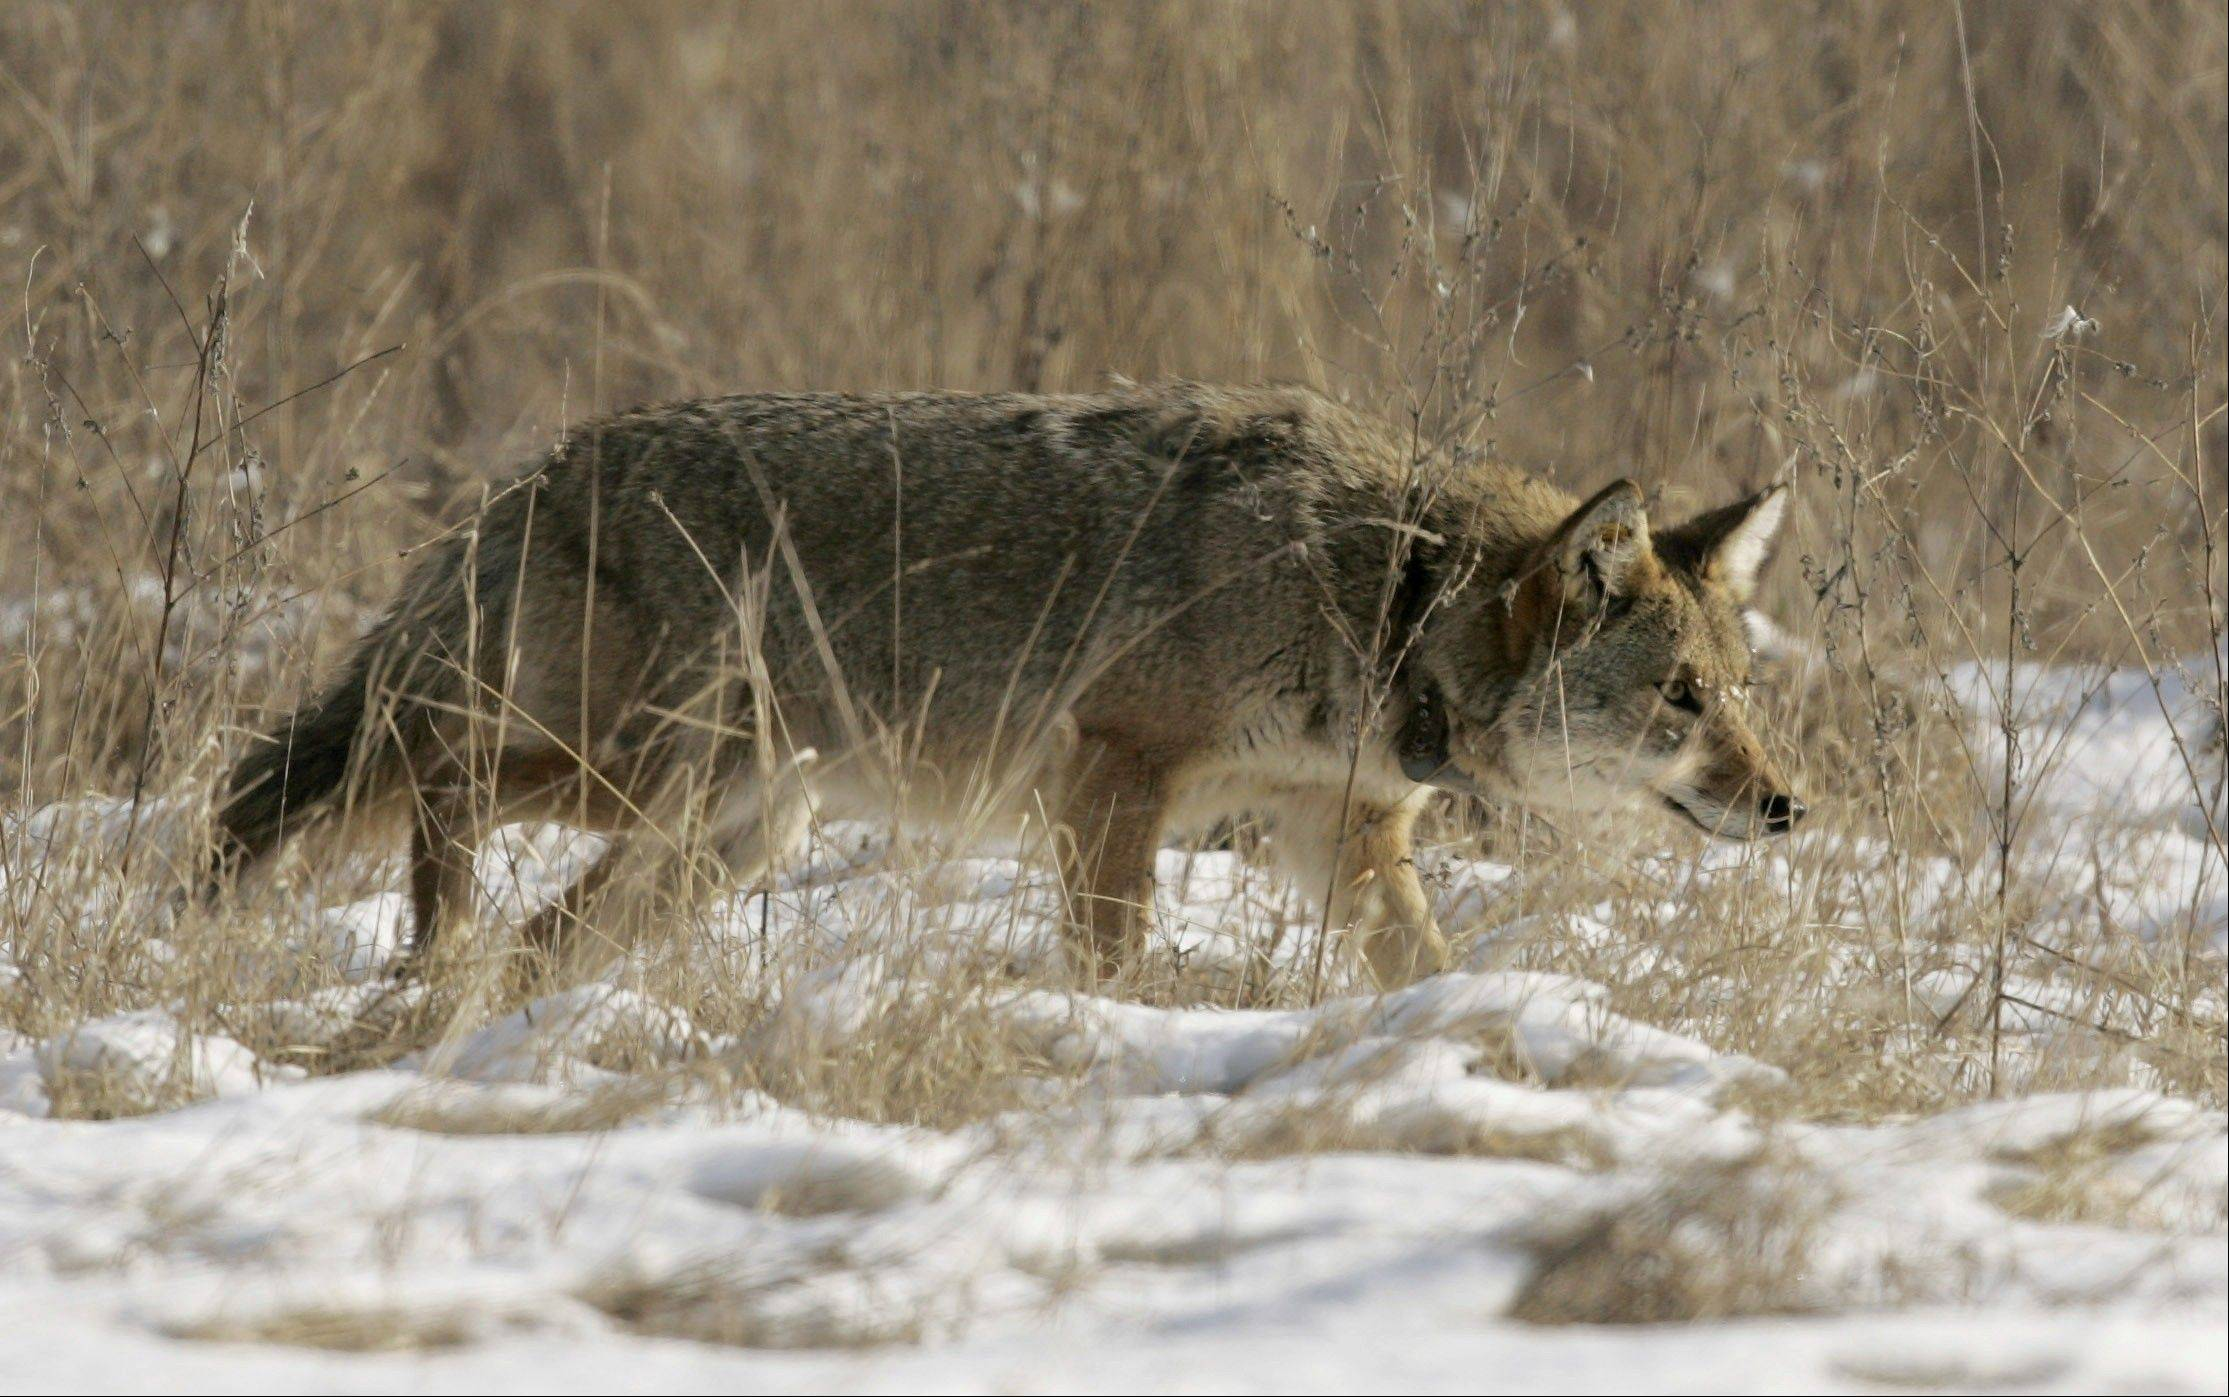 Coyotes have killed three dogs in less than two weeks in Wheaton.